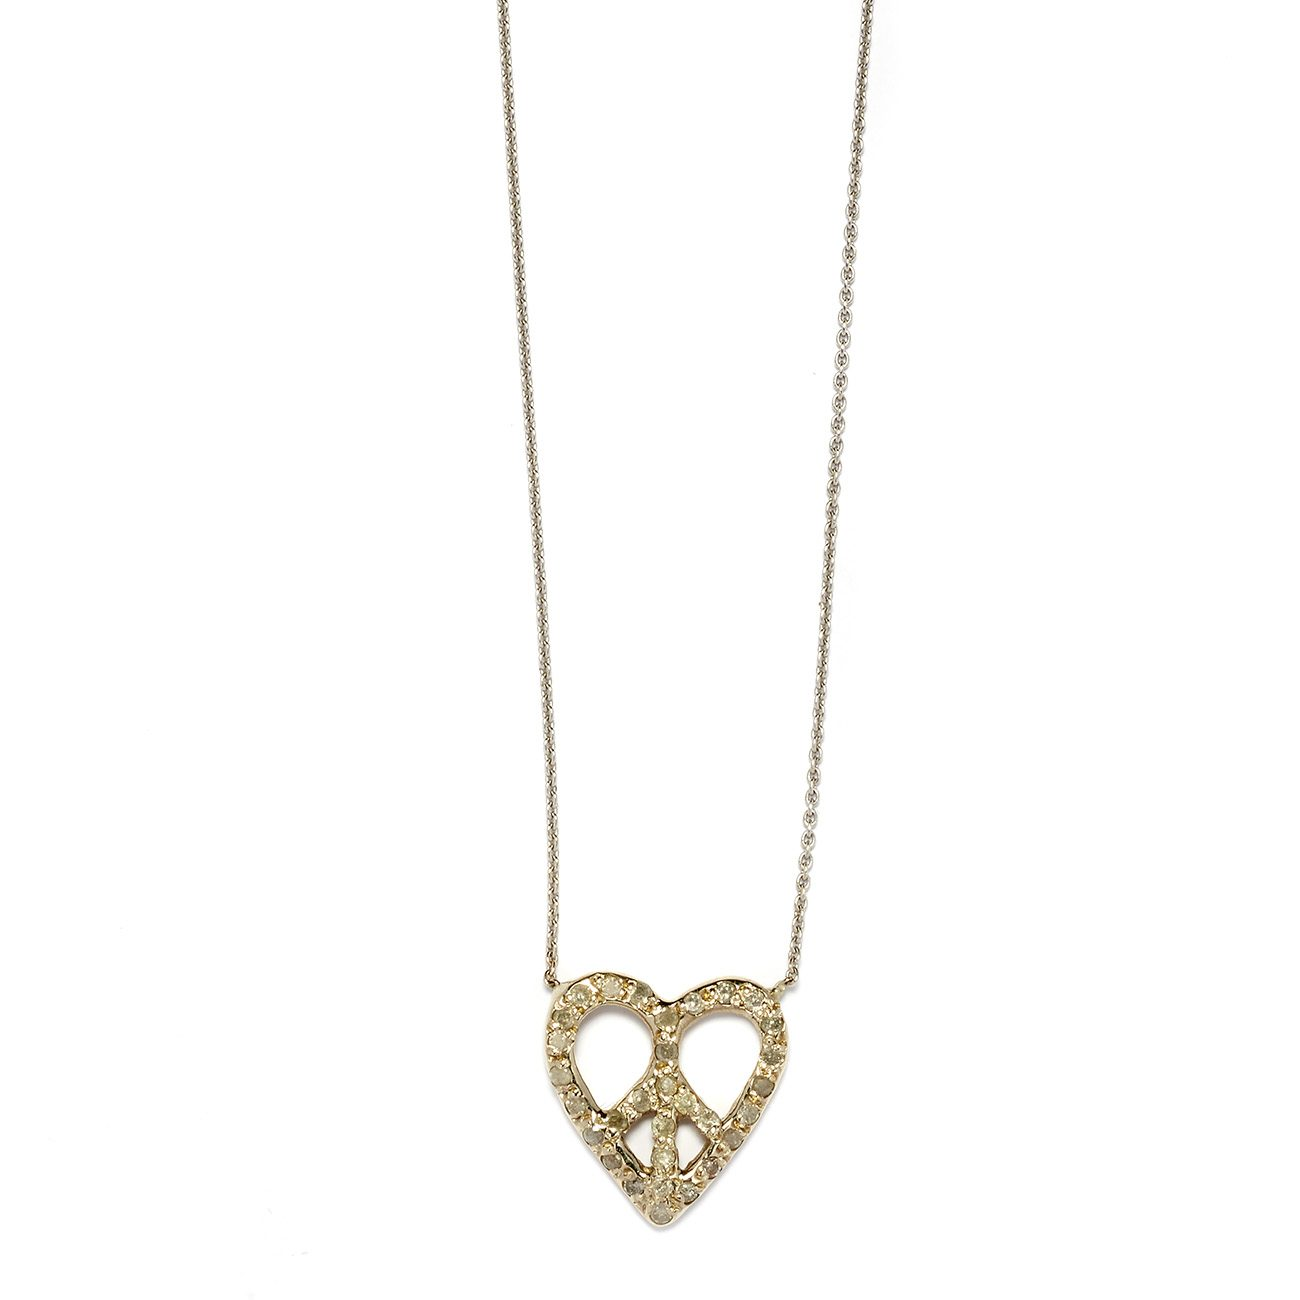 Elisa Solomon - White Gold Peace Heart Necklace